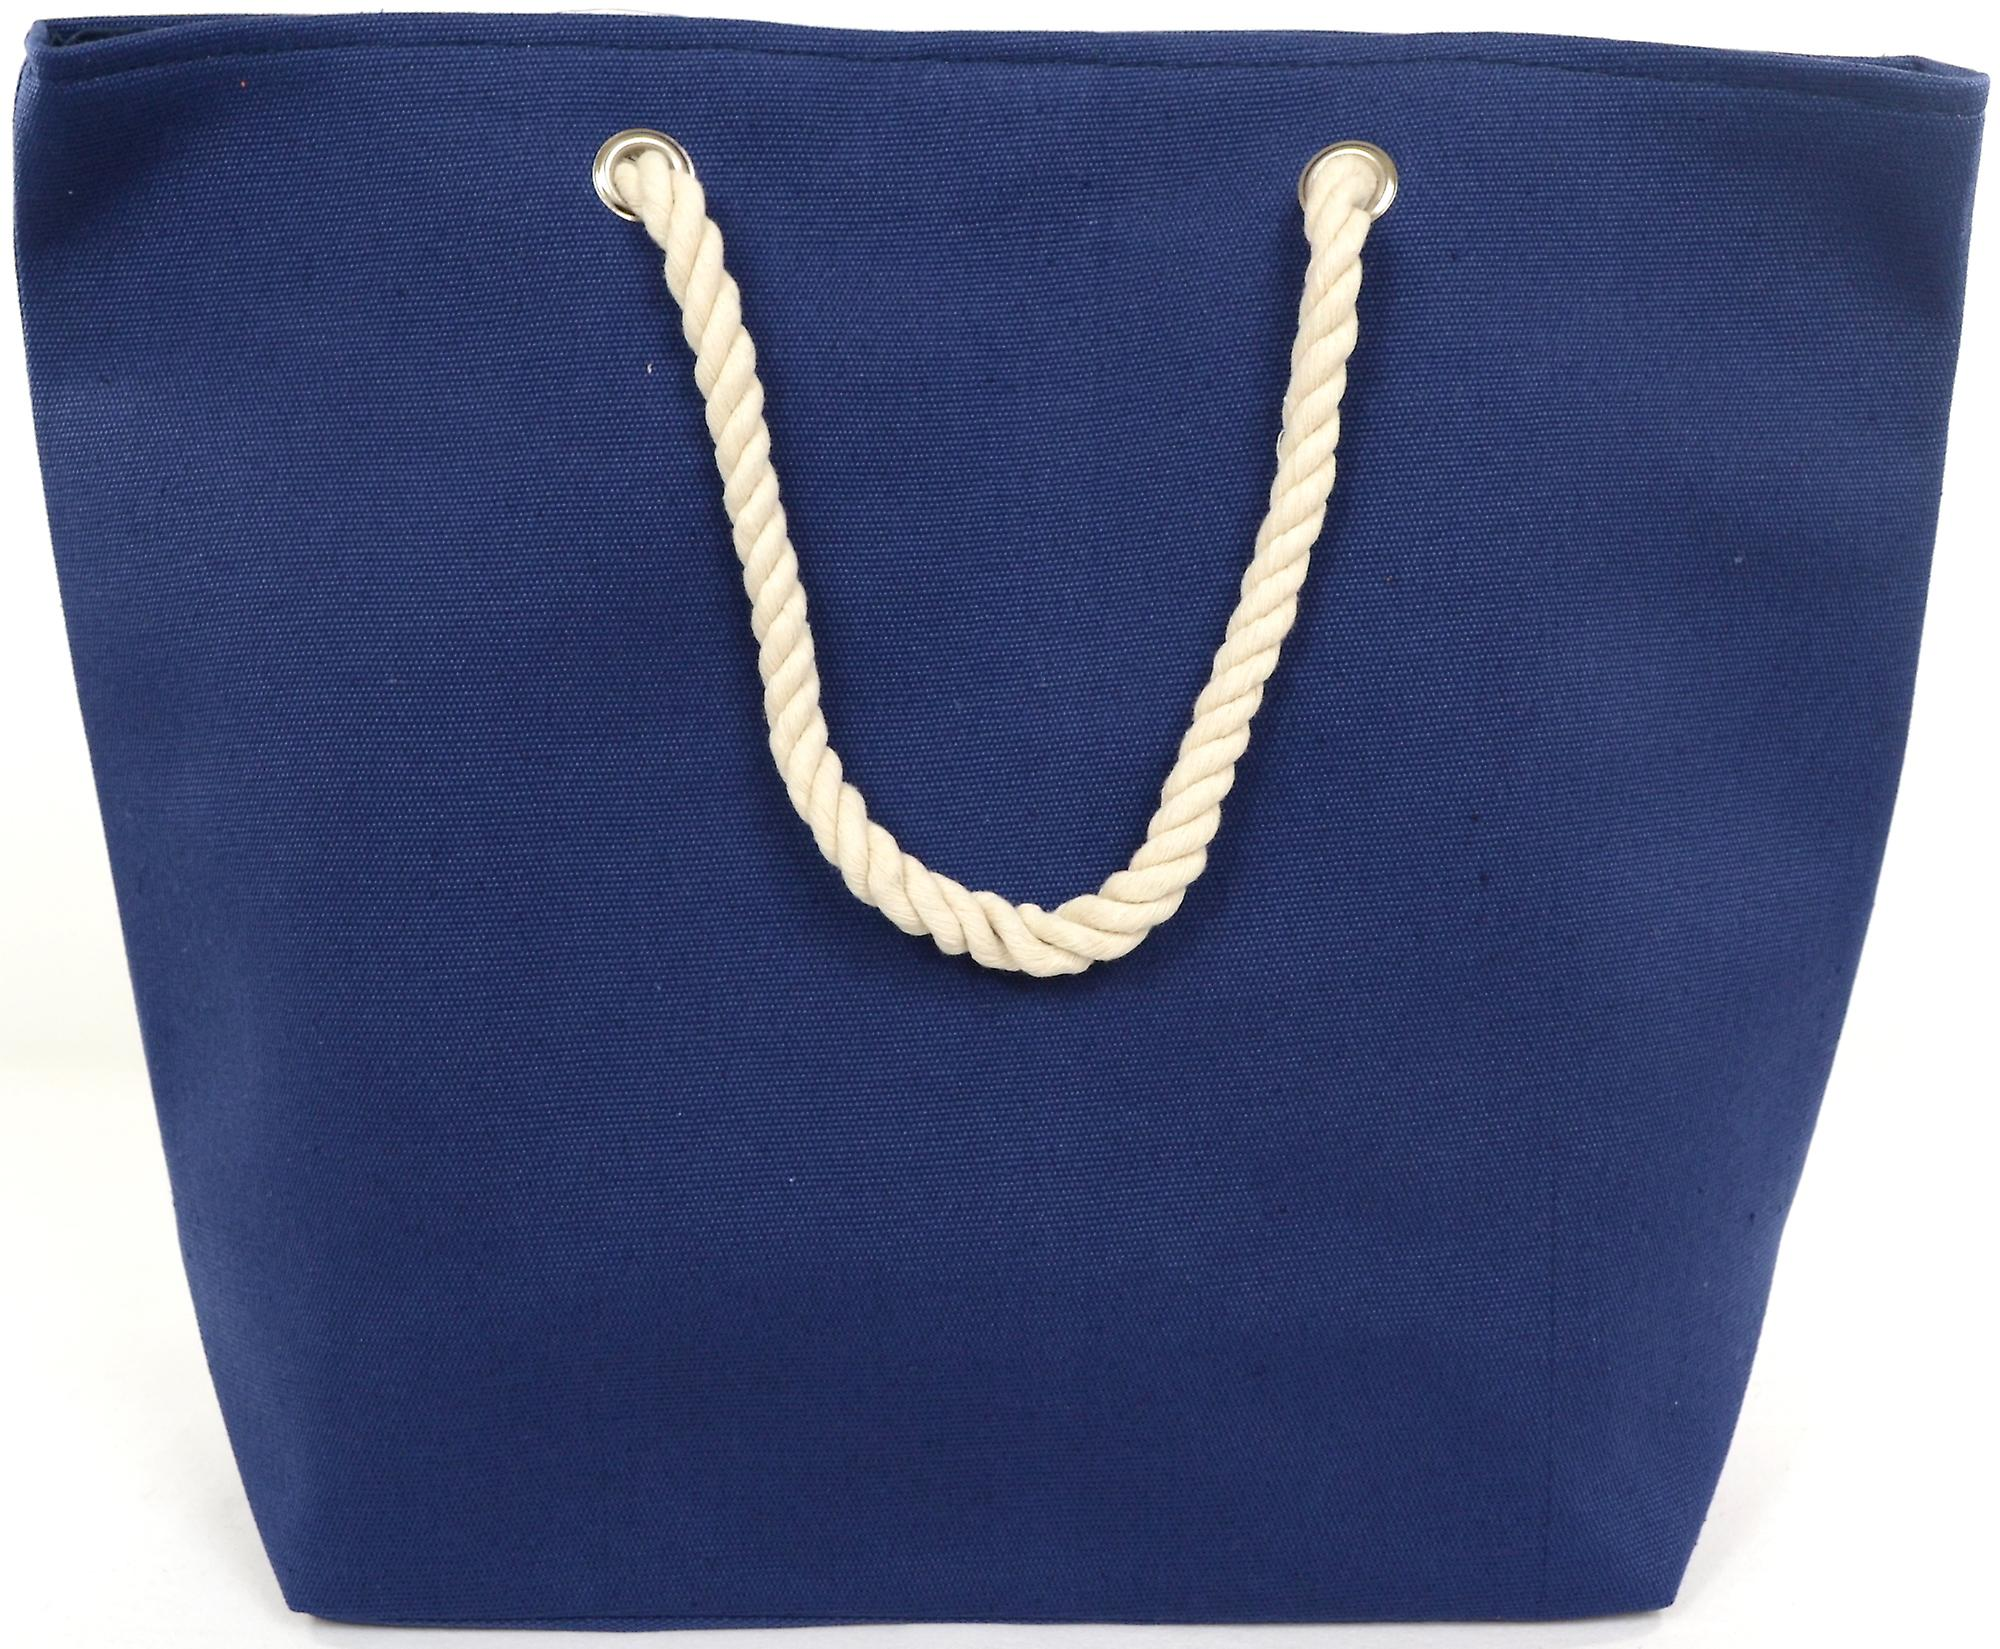 Ladies / Womens Large Navy Canvas Beach / Holiday / Summer / Tote Bag  -  Lifebouy